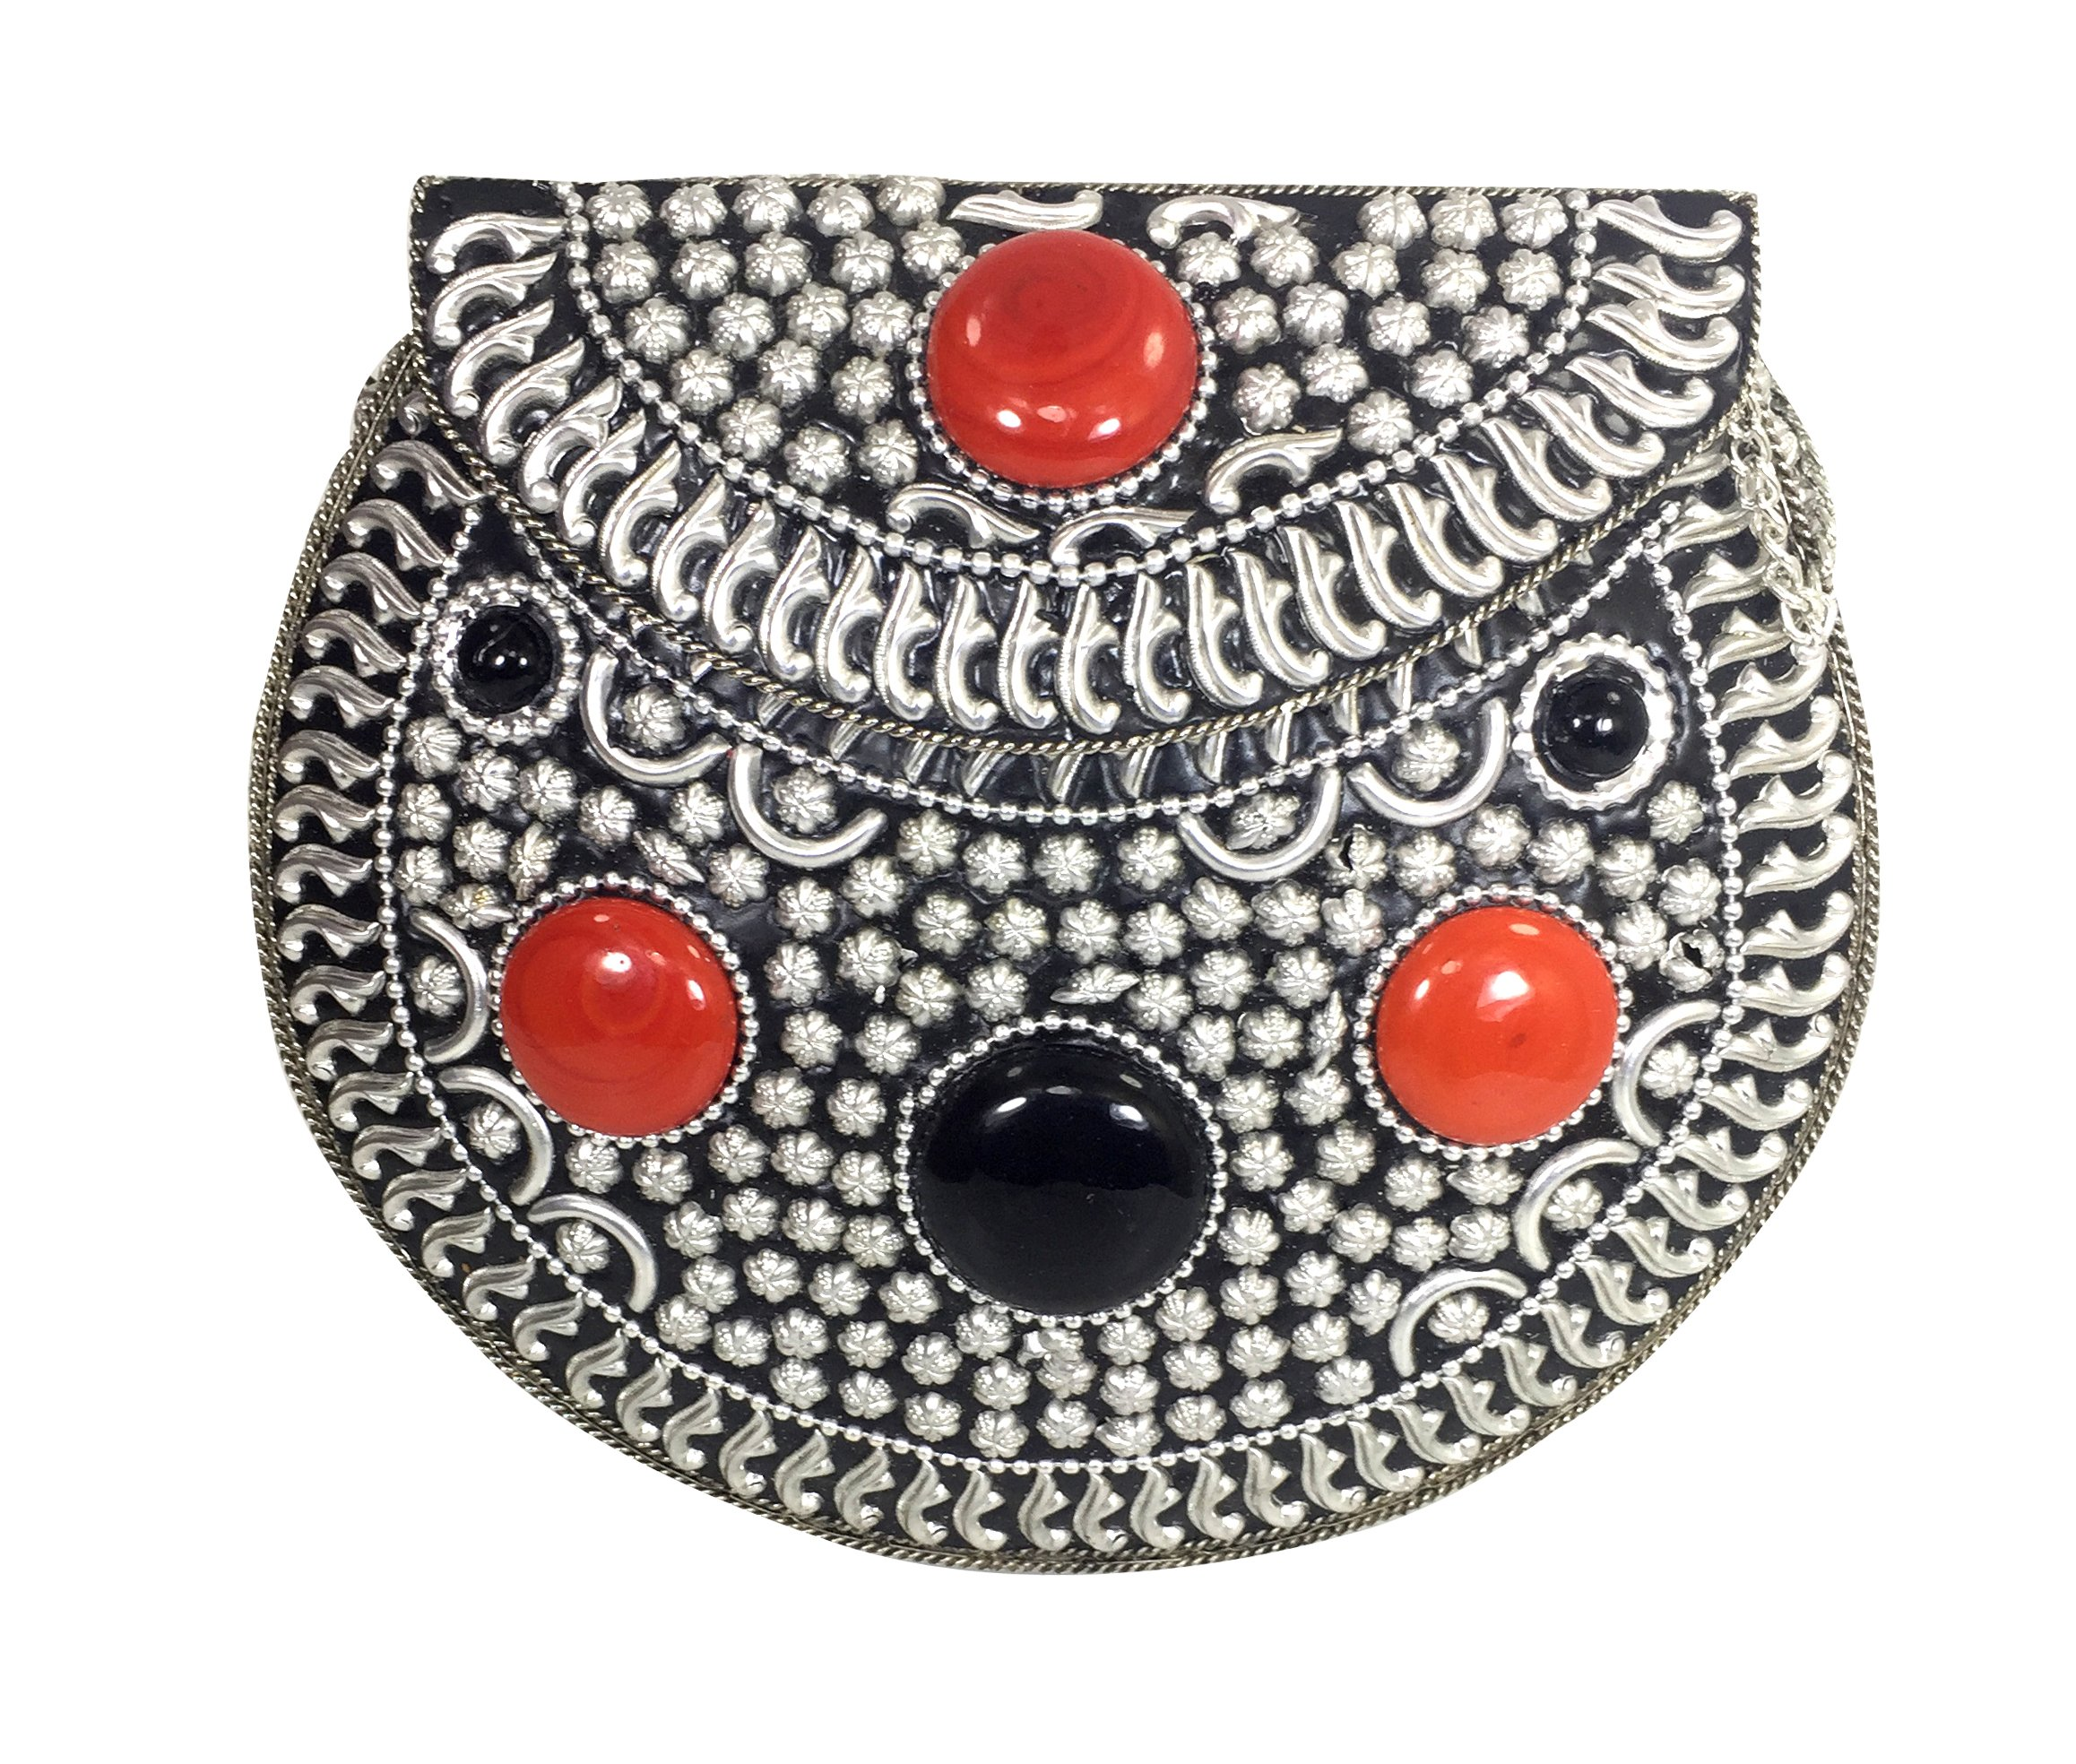 Handmade Antique Metal Glass Beads and Lac Work Clutch Wallet Handbag with Silver Chain for Women/Girls